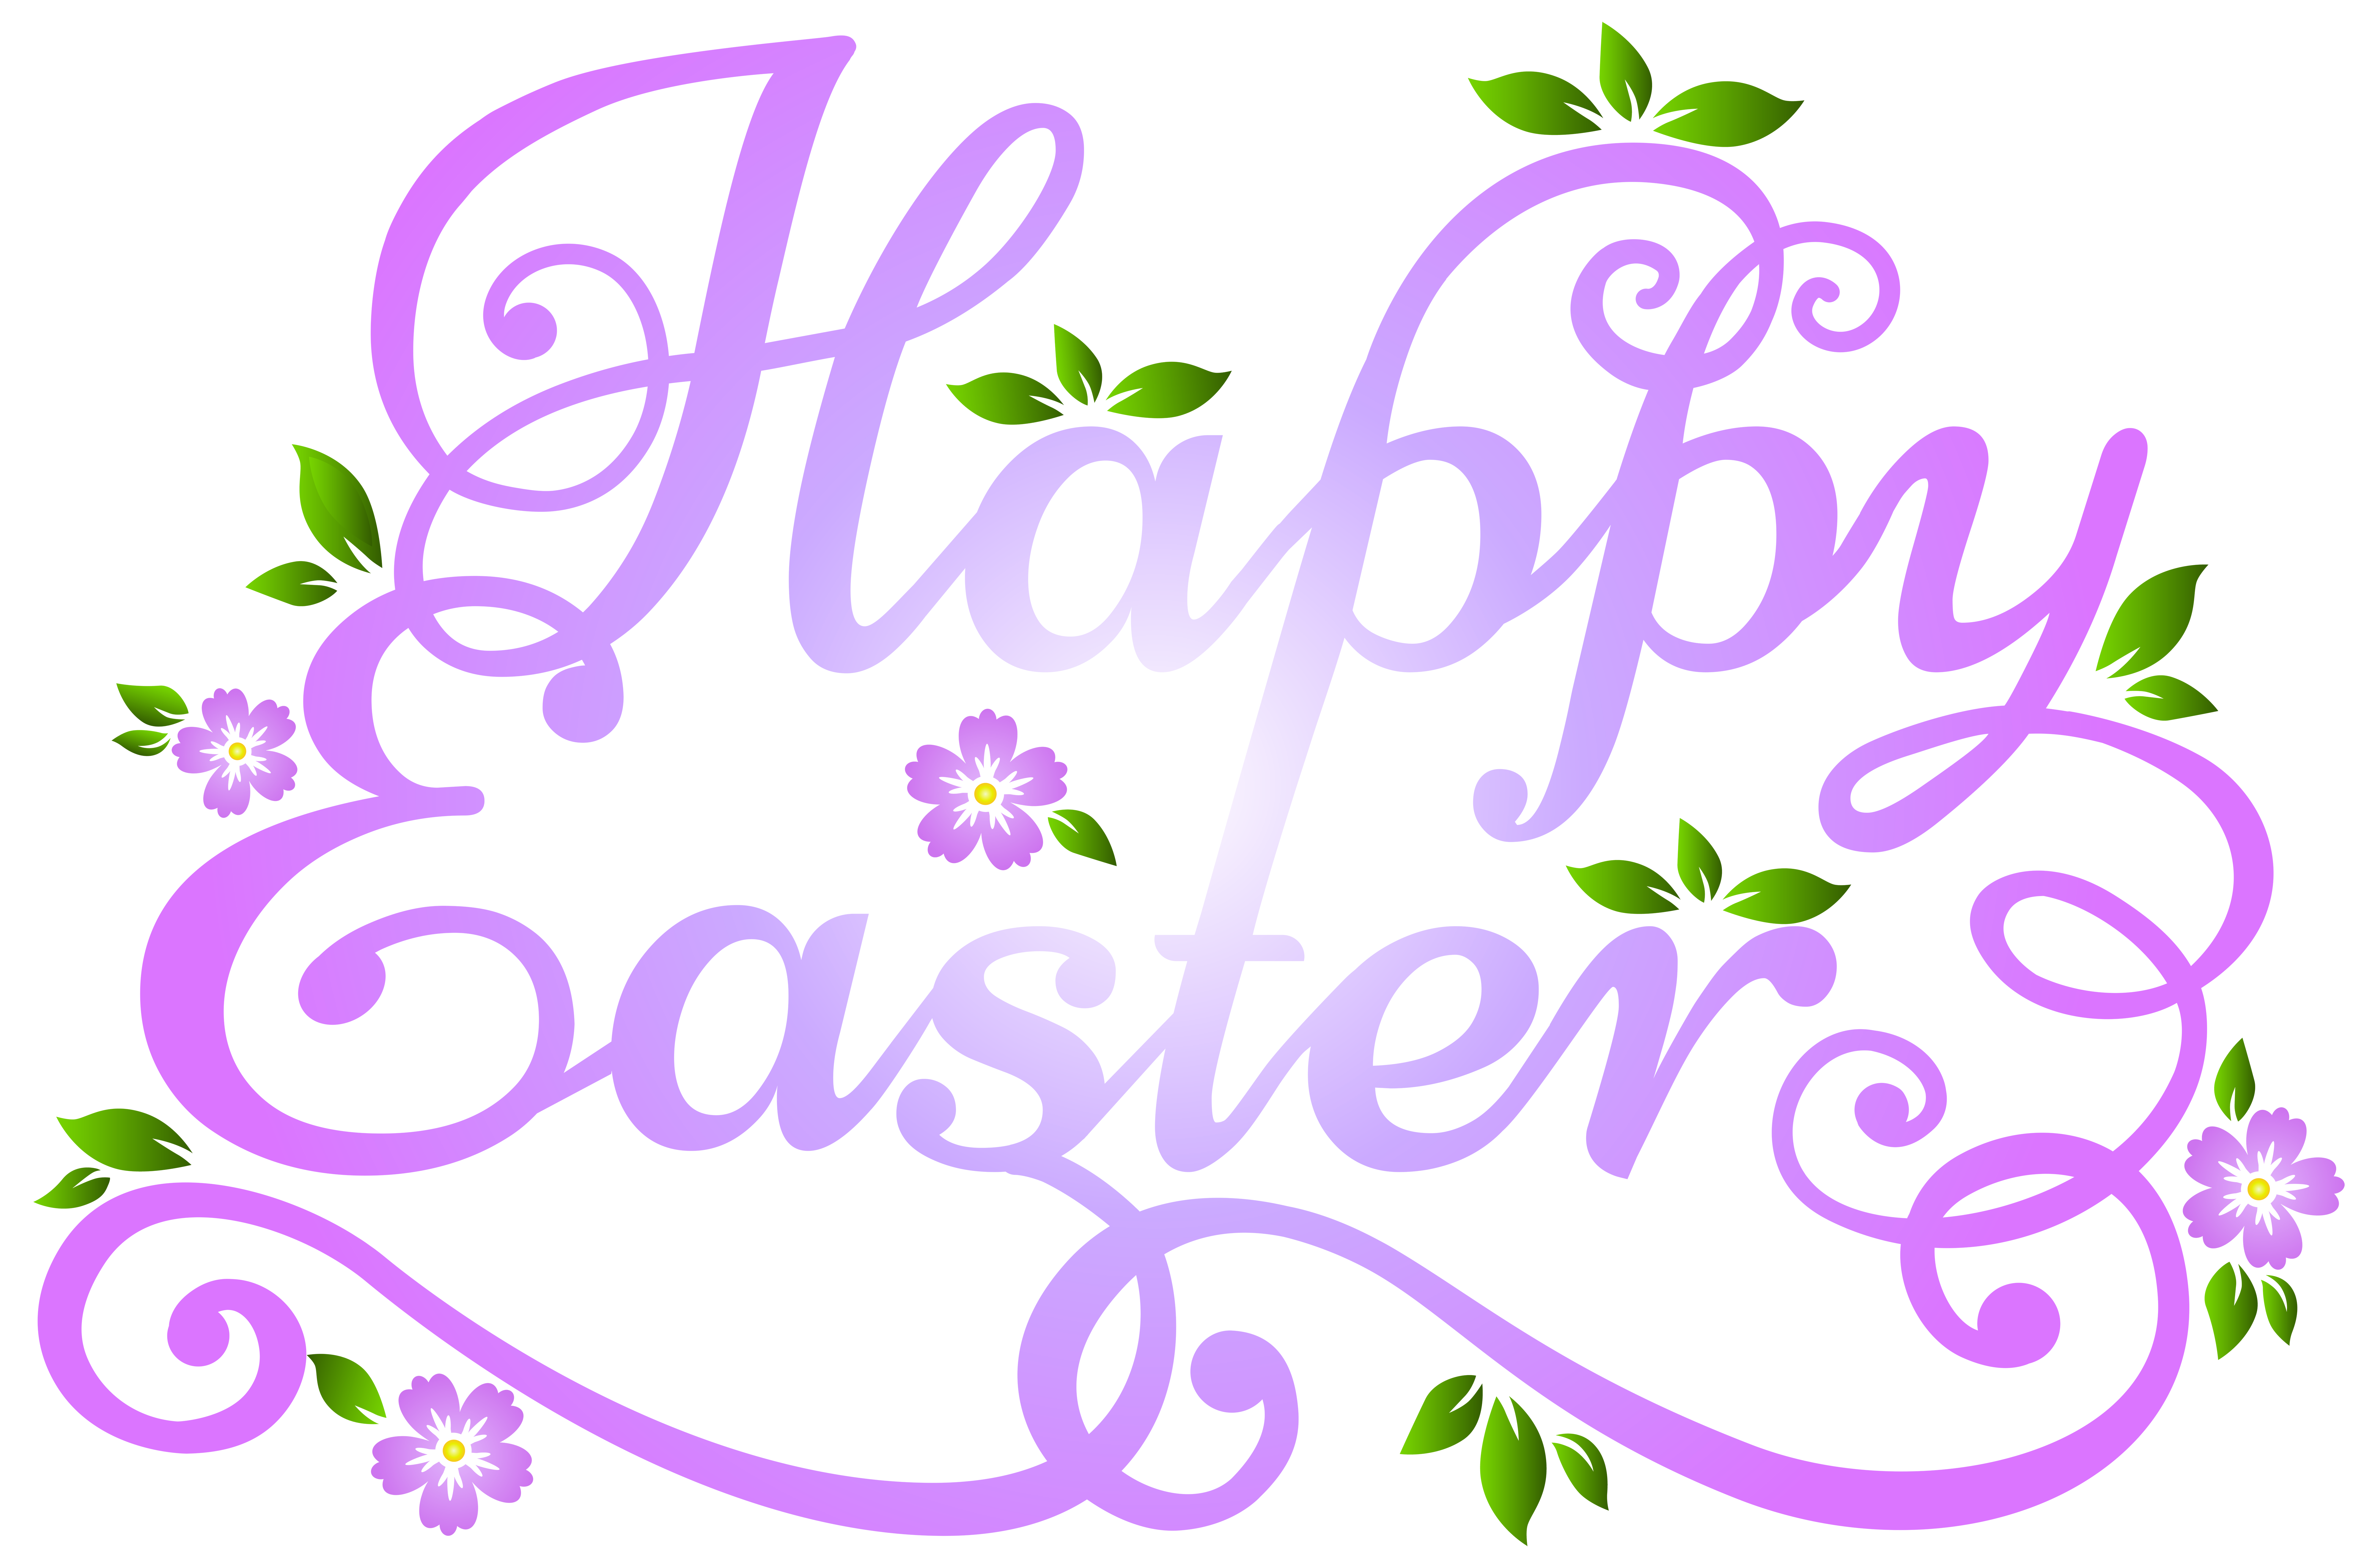 Disney star clipart jpg freeuse library Deco Happy Easter Transparent PNG Clip Art Image | Gallery ... jpg freeuse library